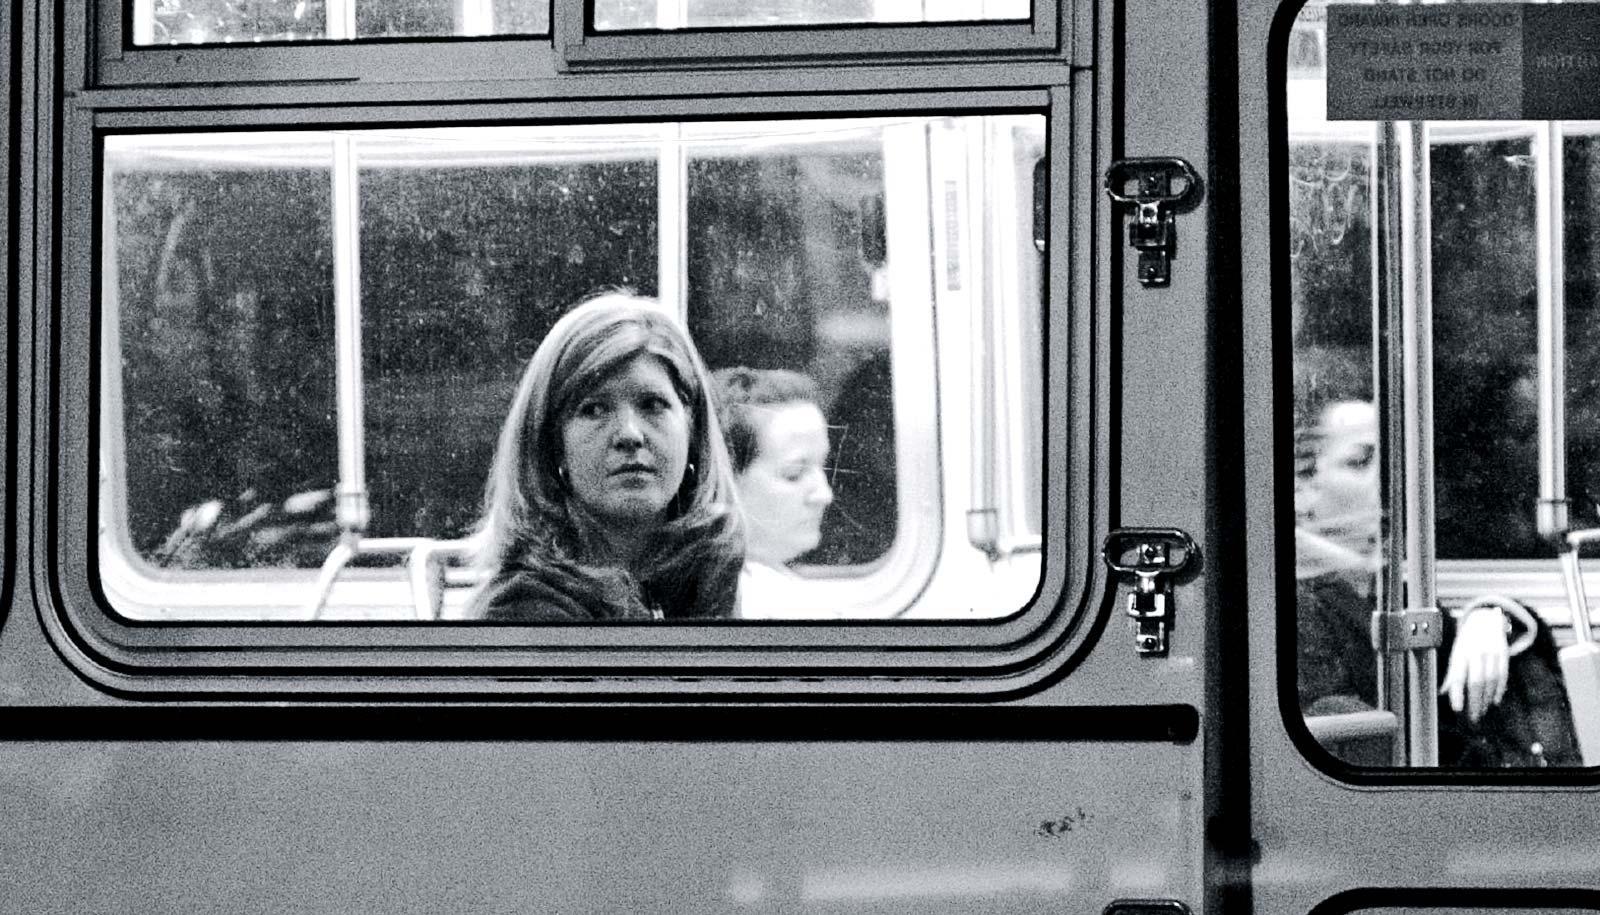 woman on the bus (working moms concept)